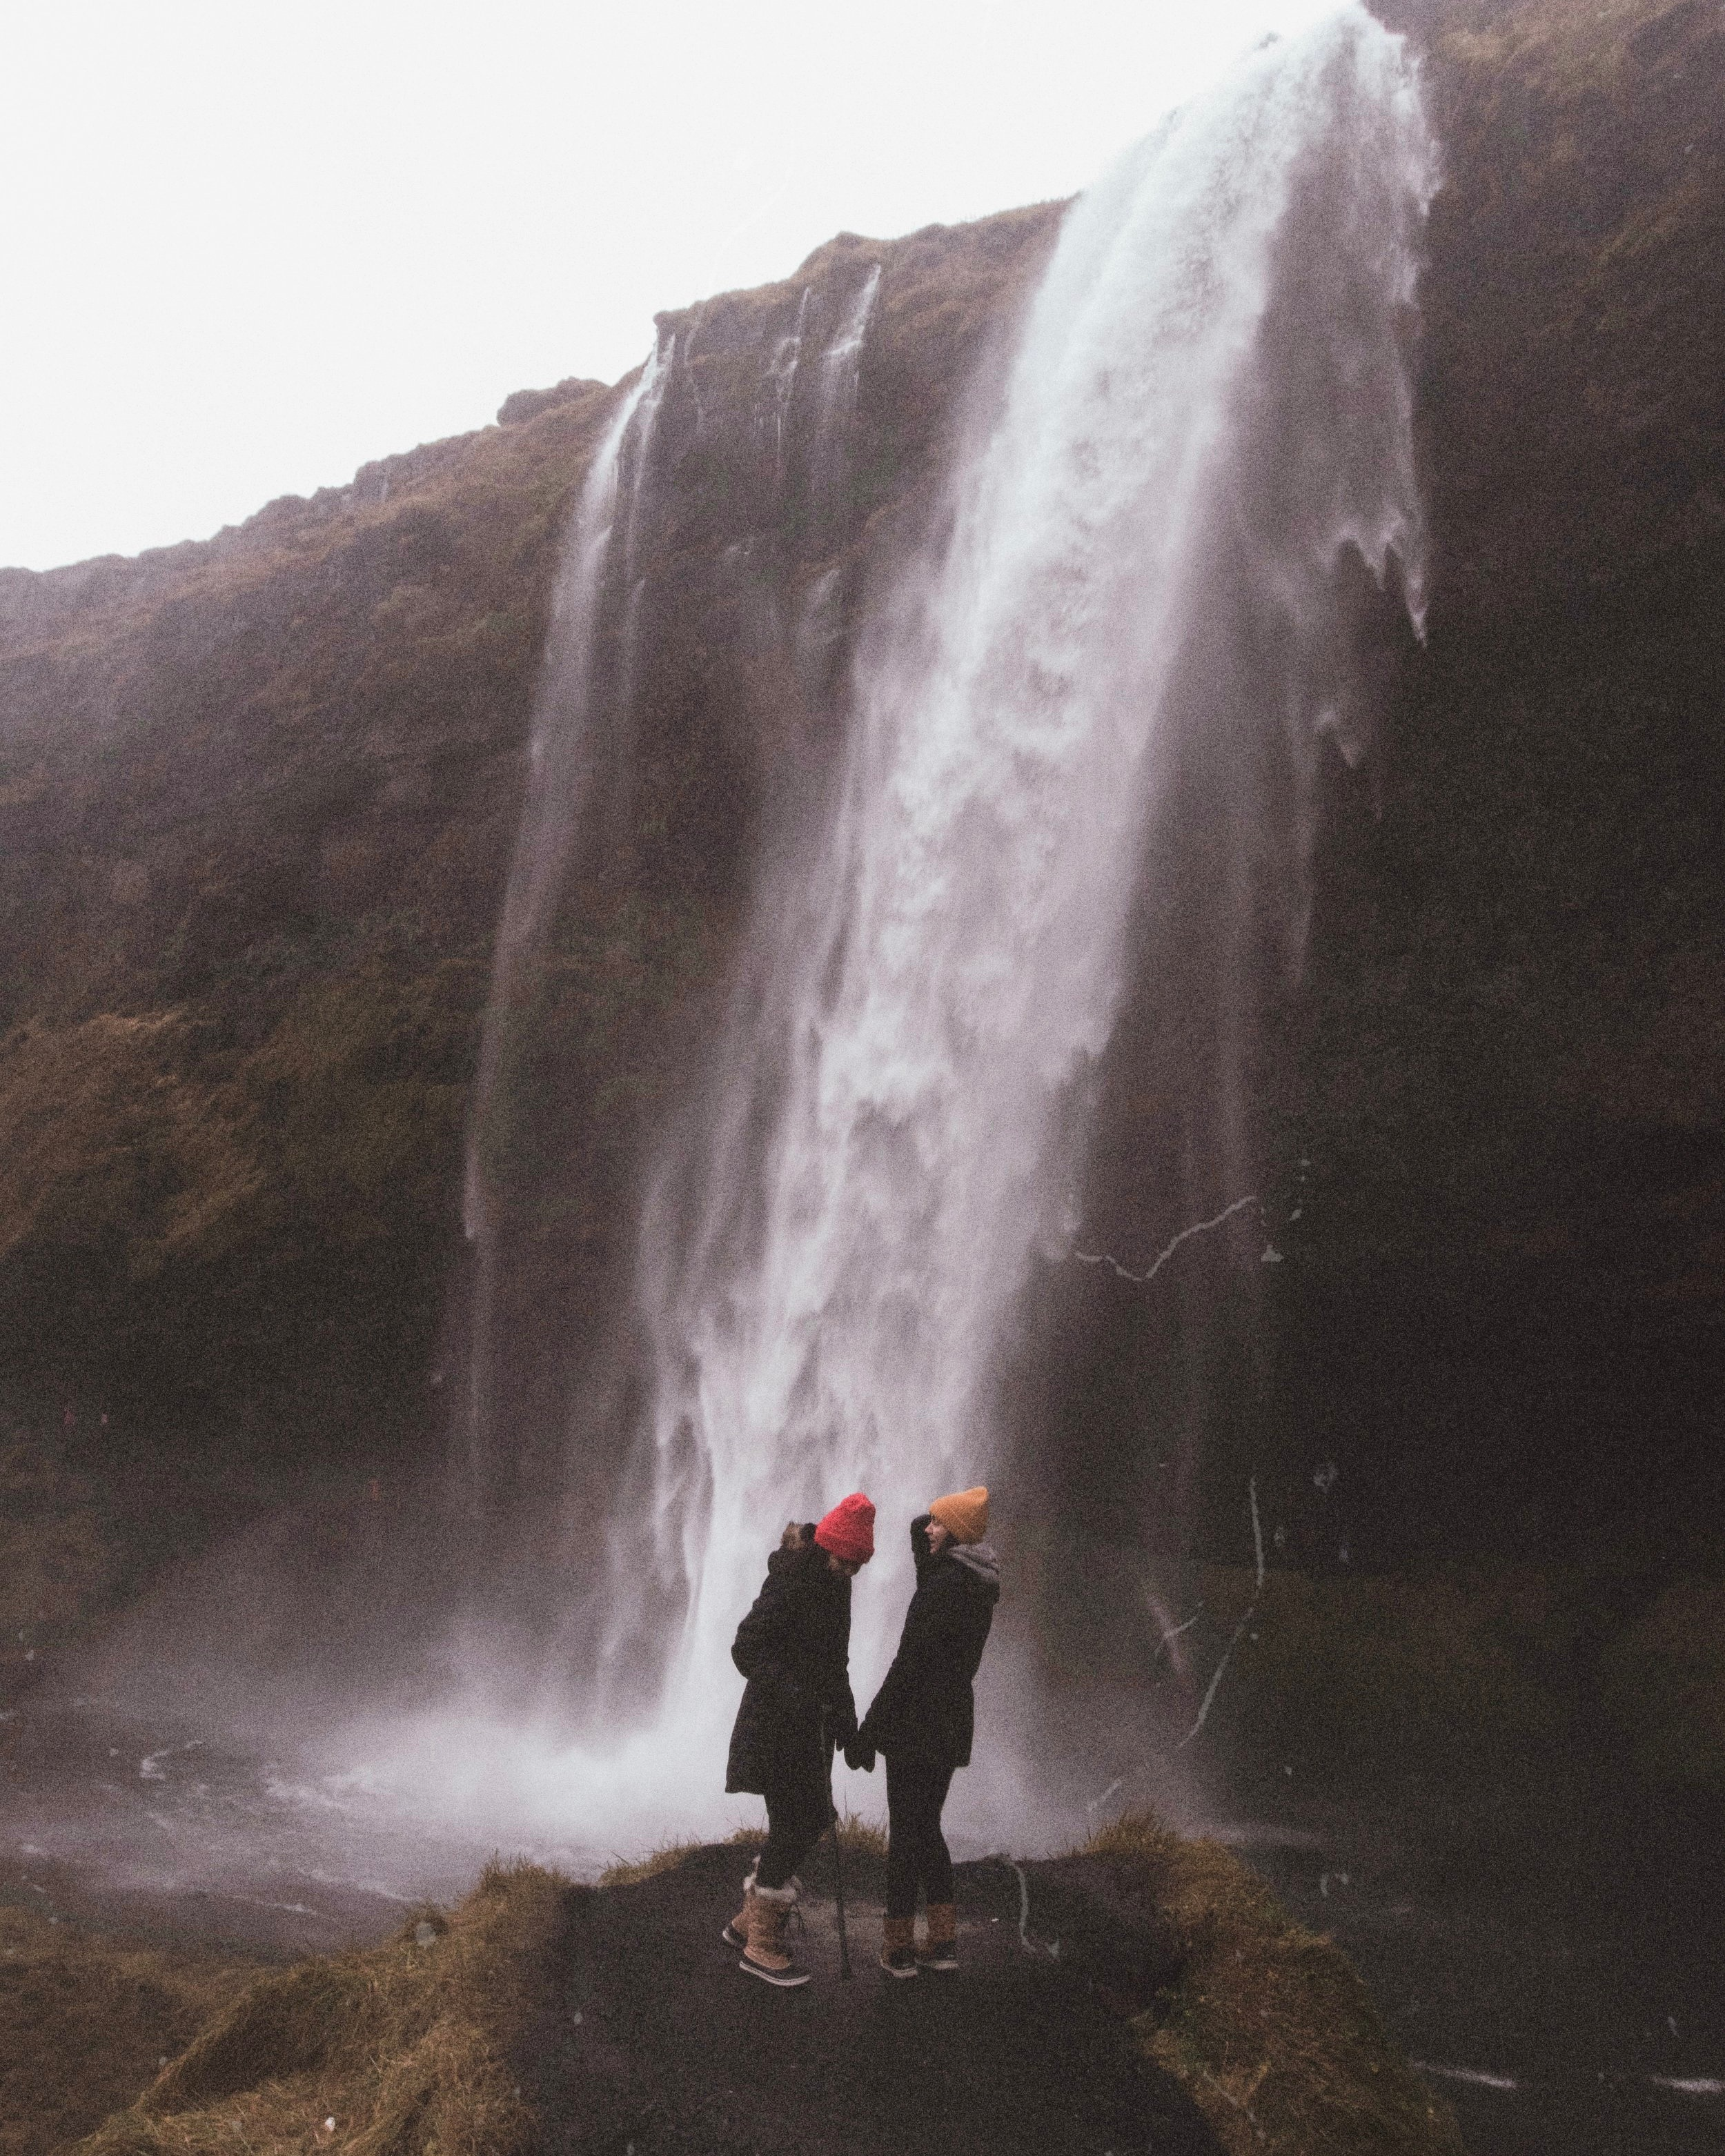 - Being able to go to Iceland with my younger sister Ally was definitely one of my 2018 if not lifetime highlights. It was amazing being with her while she experienced something as exciting as visiting one of her dream trips. She's always wanted to go to Iceland, and we kind of planned the trip last minute-ish (one month in advance) and jetted off!